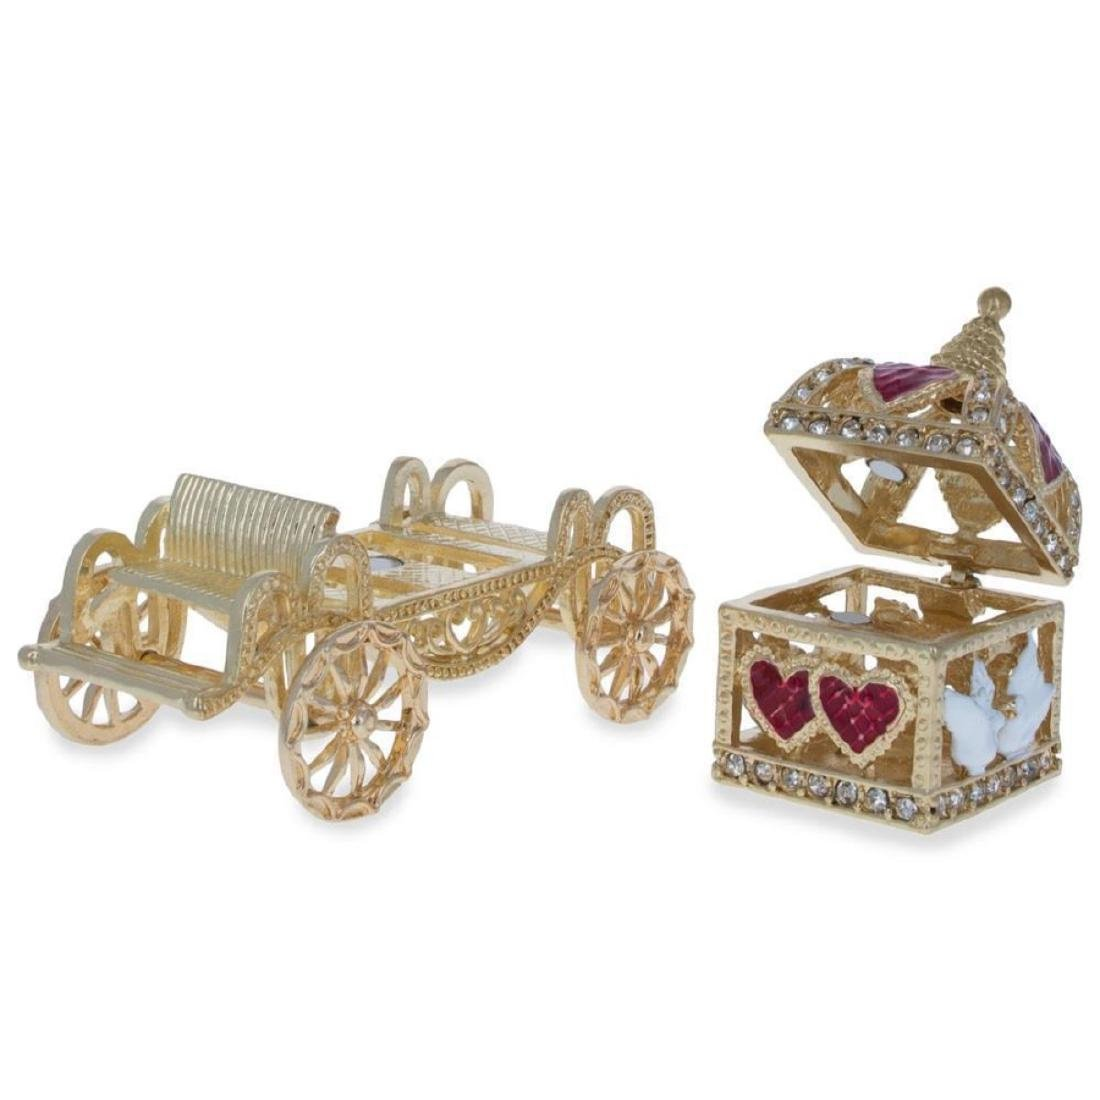 Royal Coronation Coach with Doves Trinket Box Figurine - 3